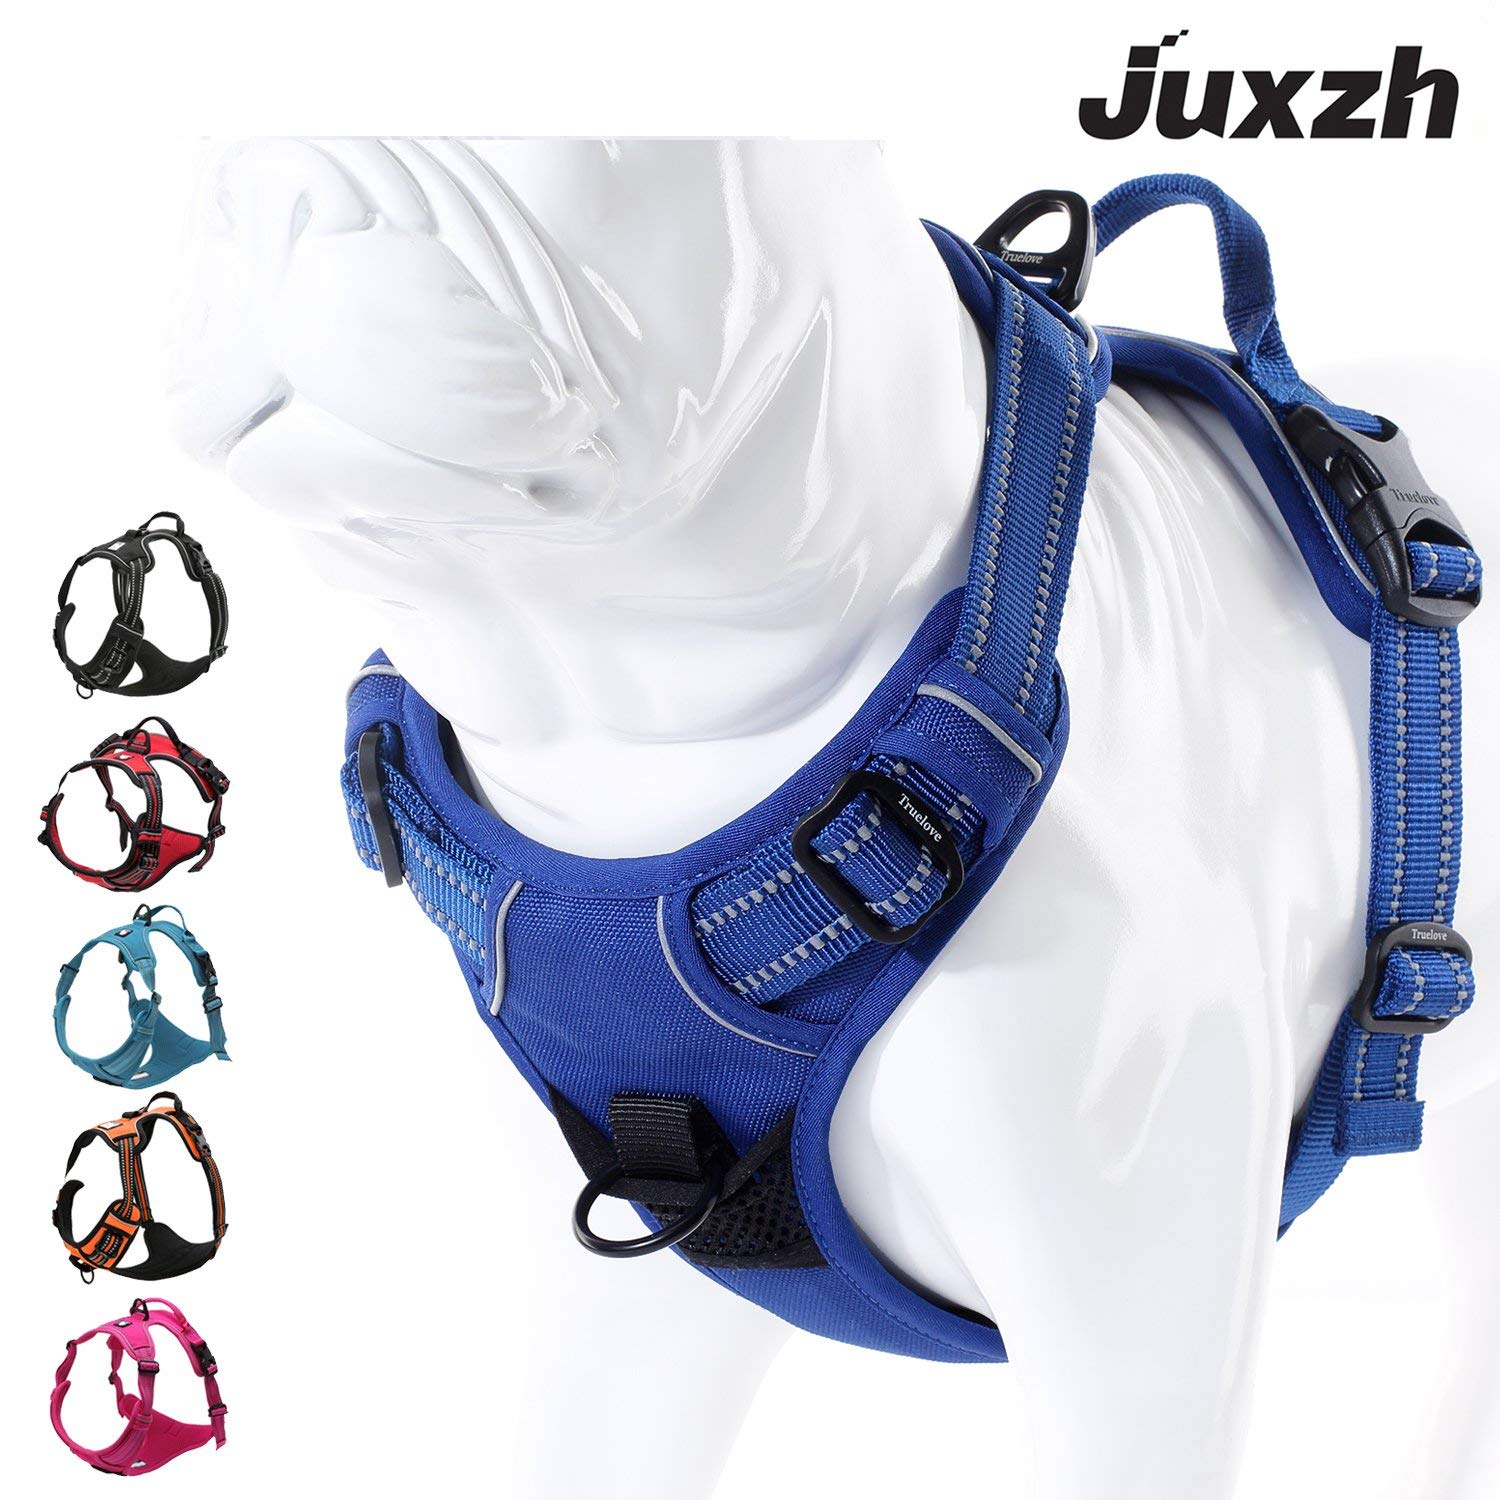 Royal bluee Large Royal bluee Large JUXZH Soft Front Dog Harness .Best Reflective No Pull Harness with Handle and Two Leash Attachments